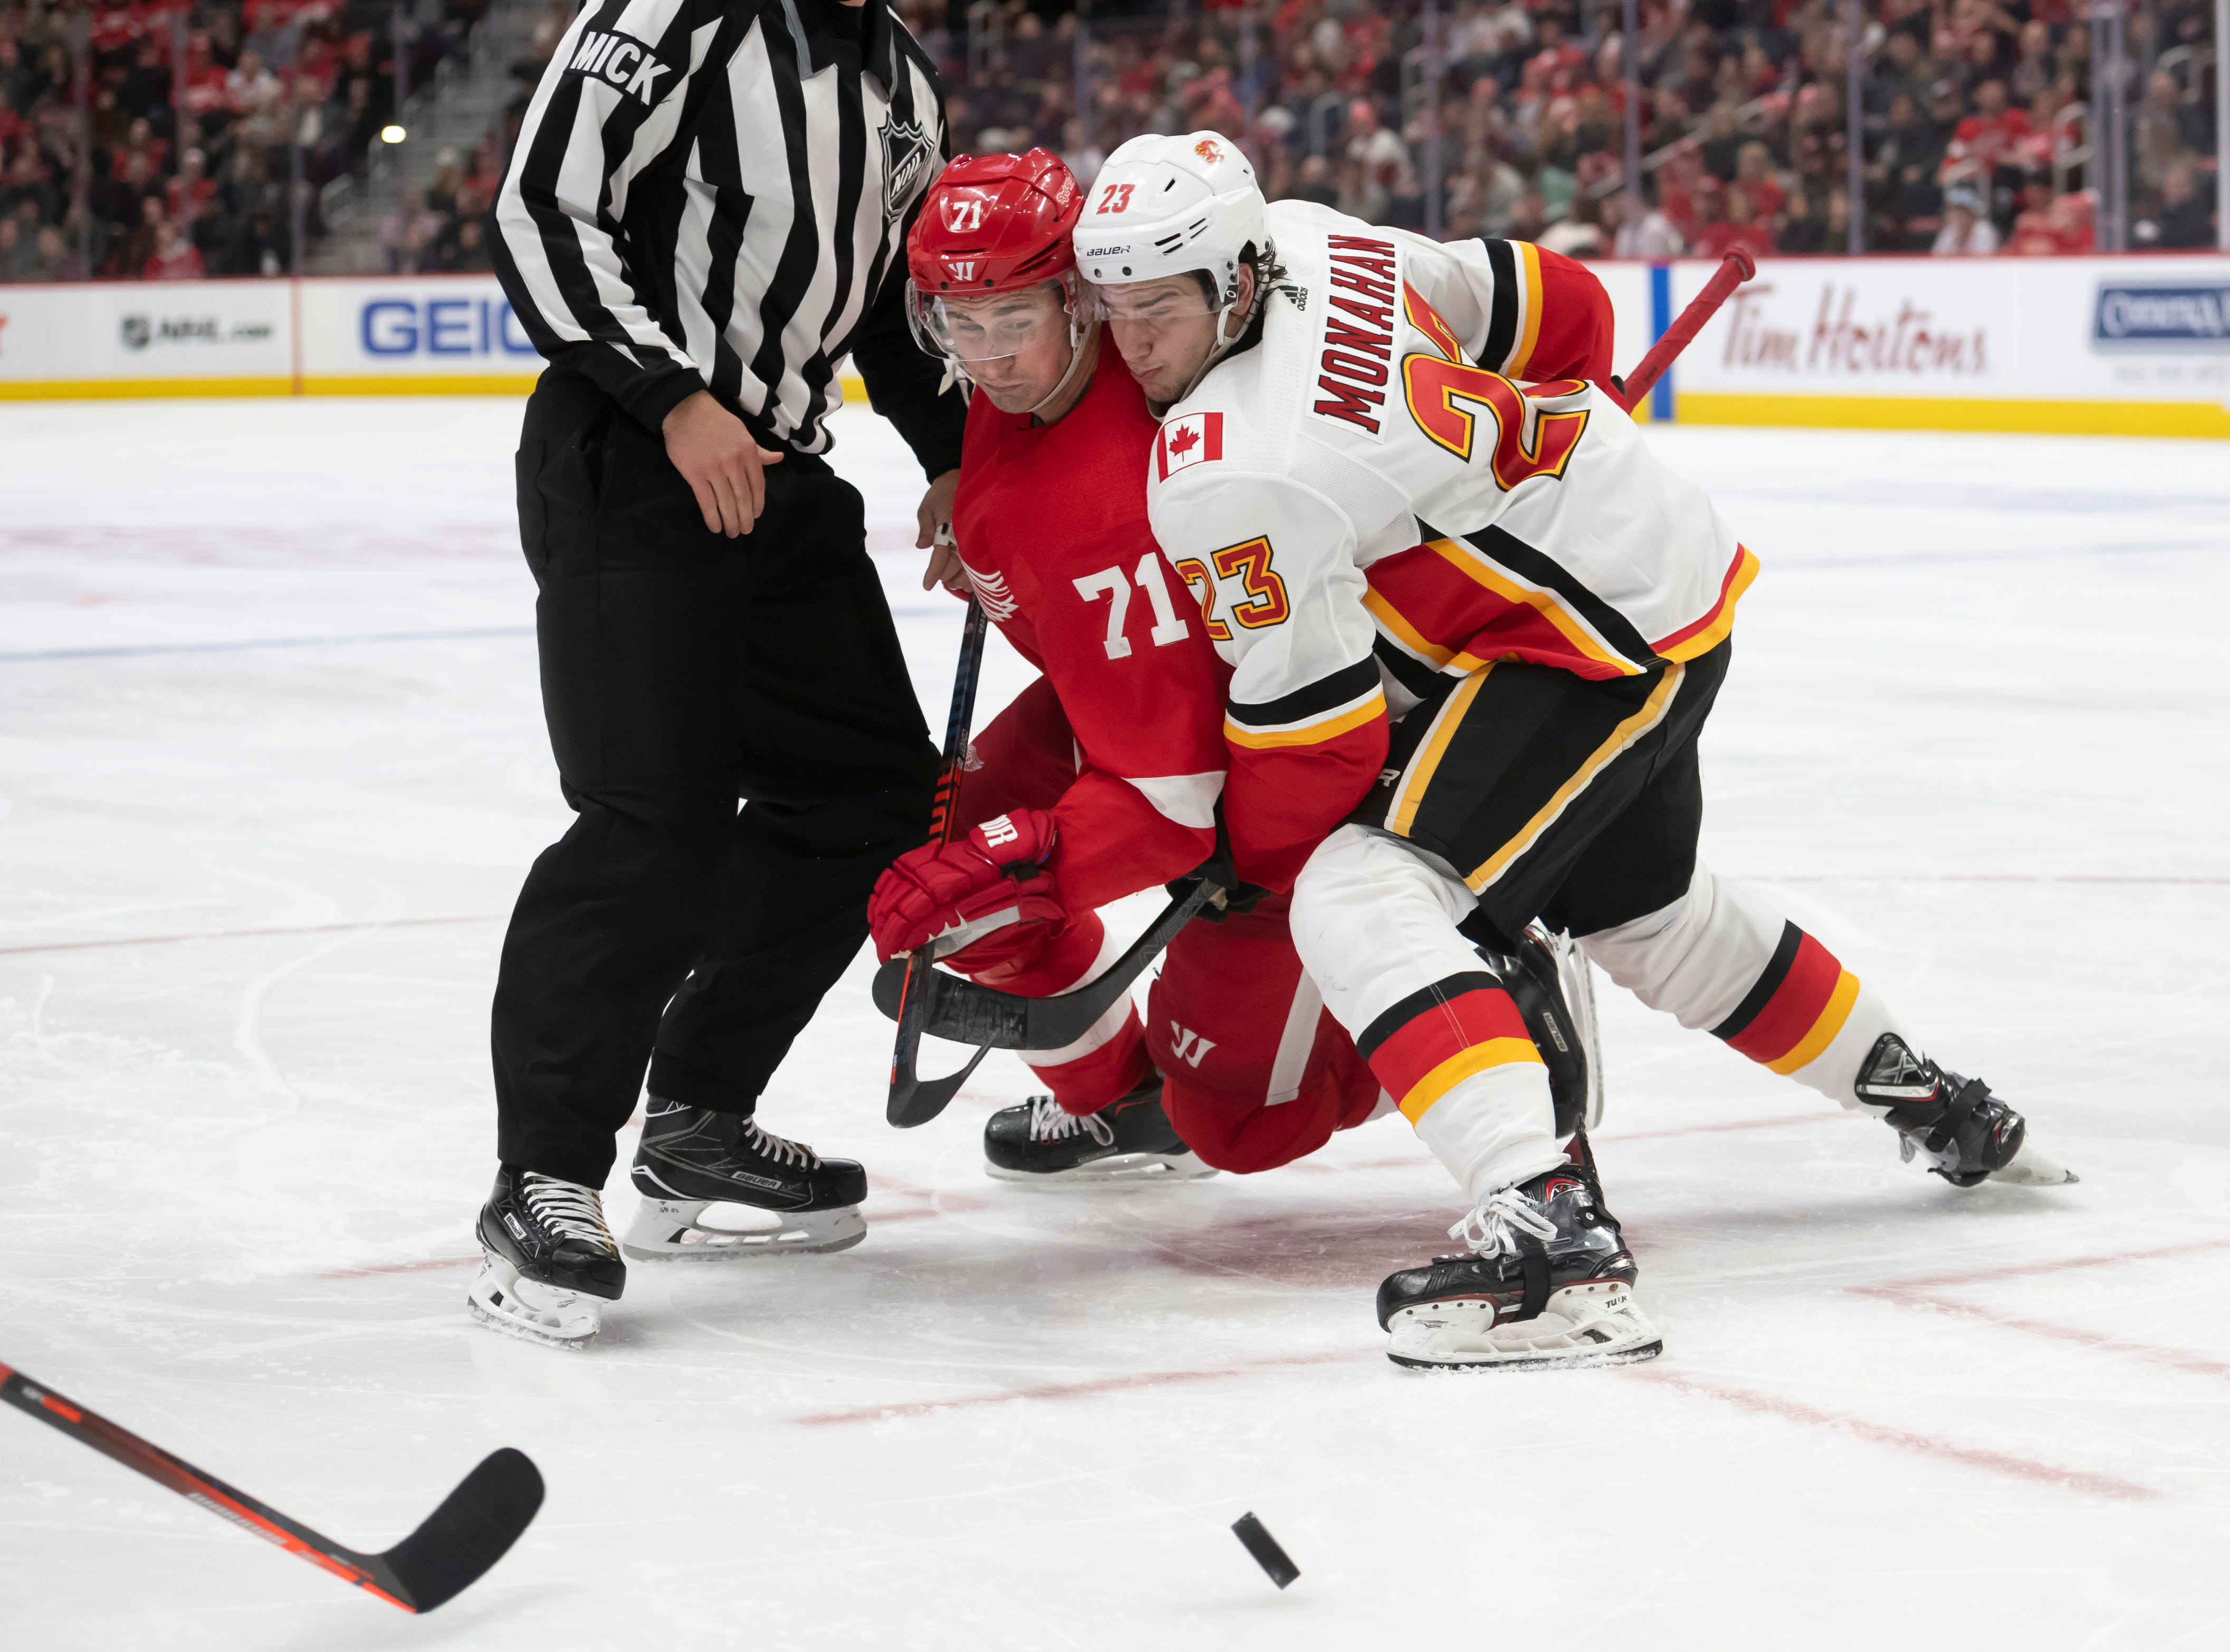 Detroit center Dylan Larkin and Calgary center Sean Monahan battle for a face-off in the third period.